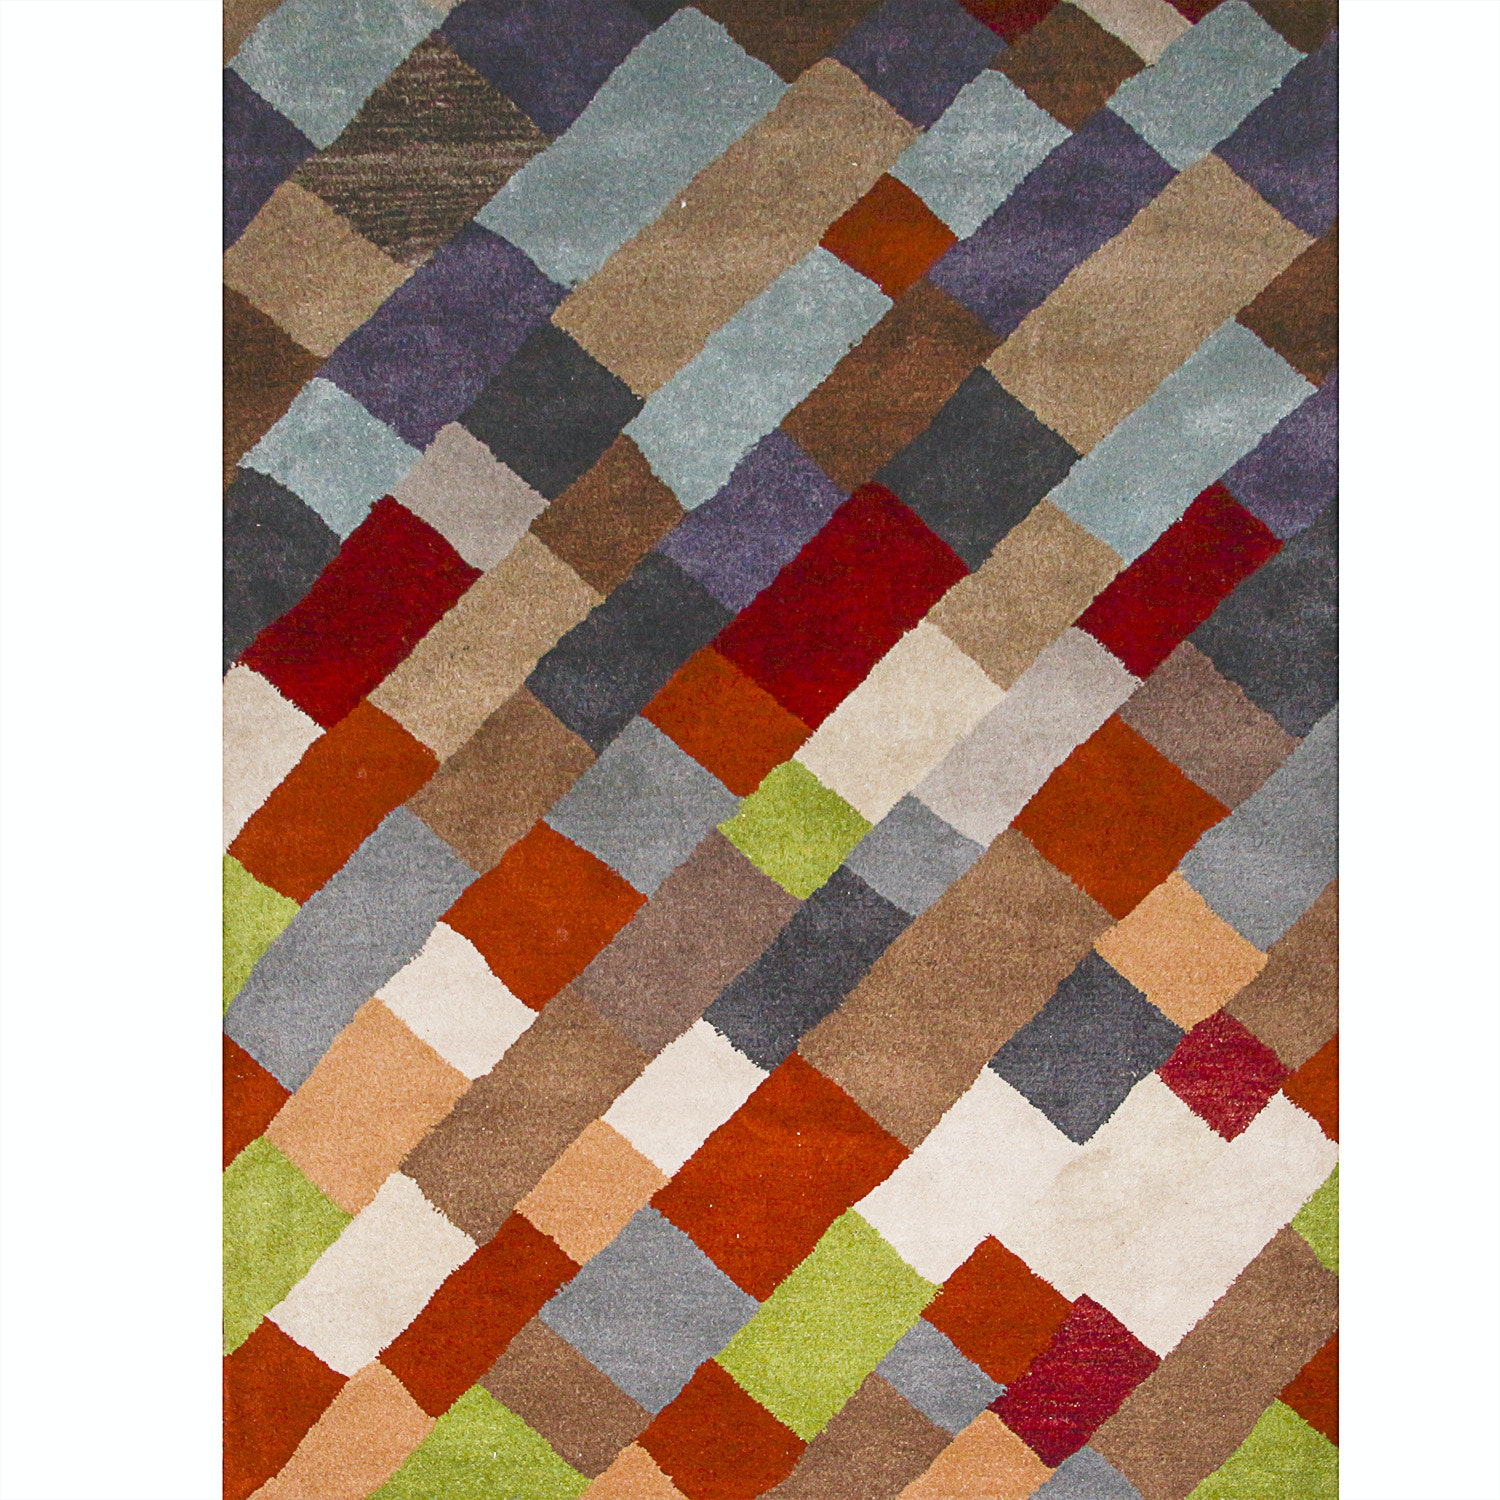 Contemporary Tufted Geometric Print Rug